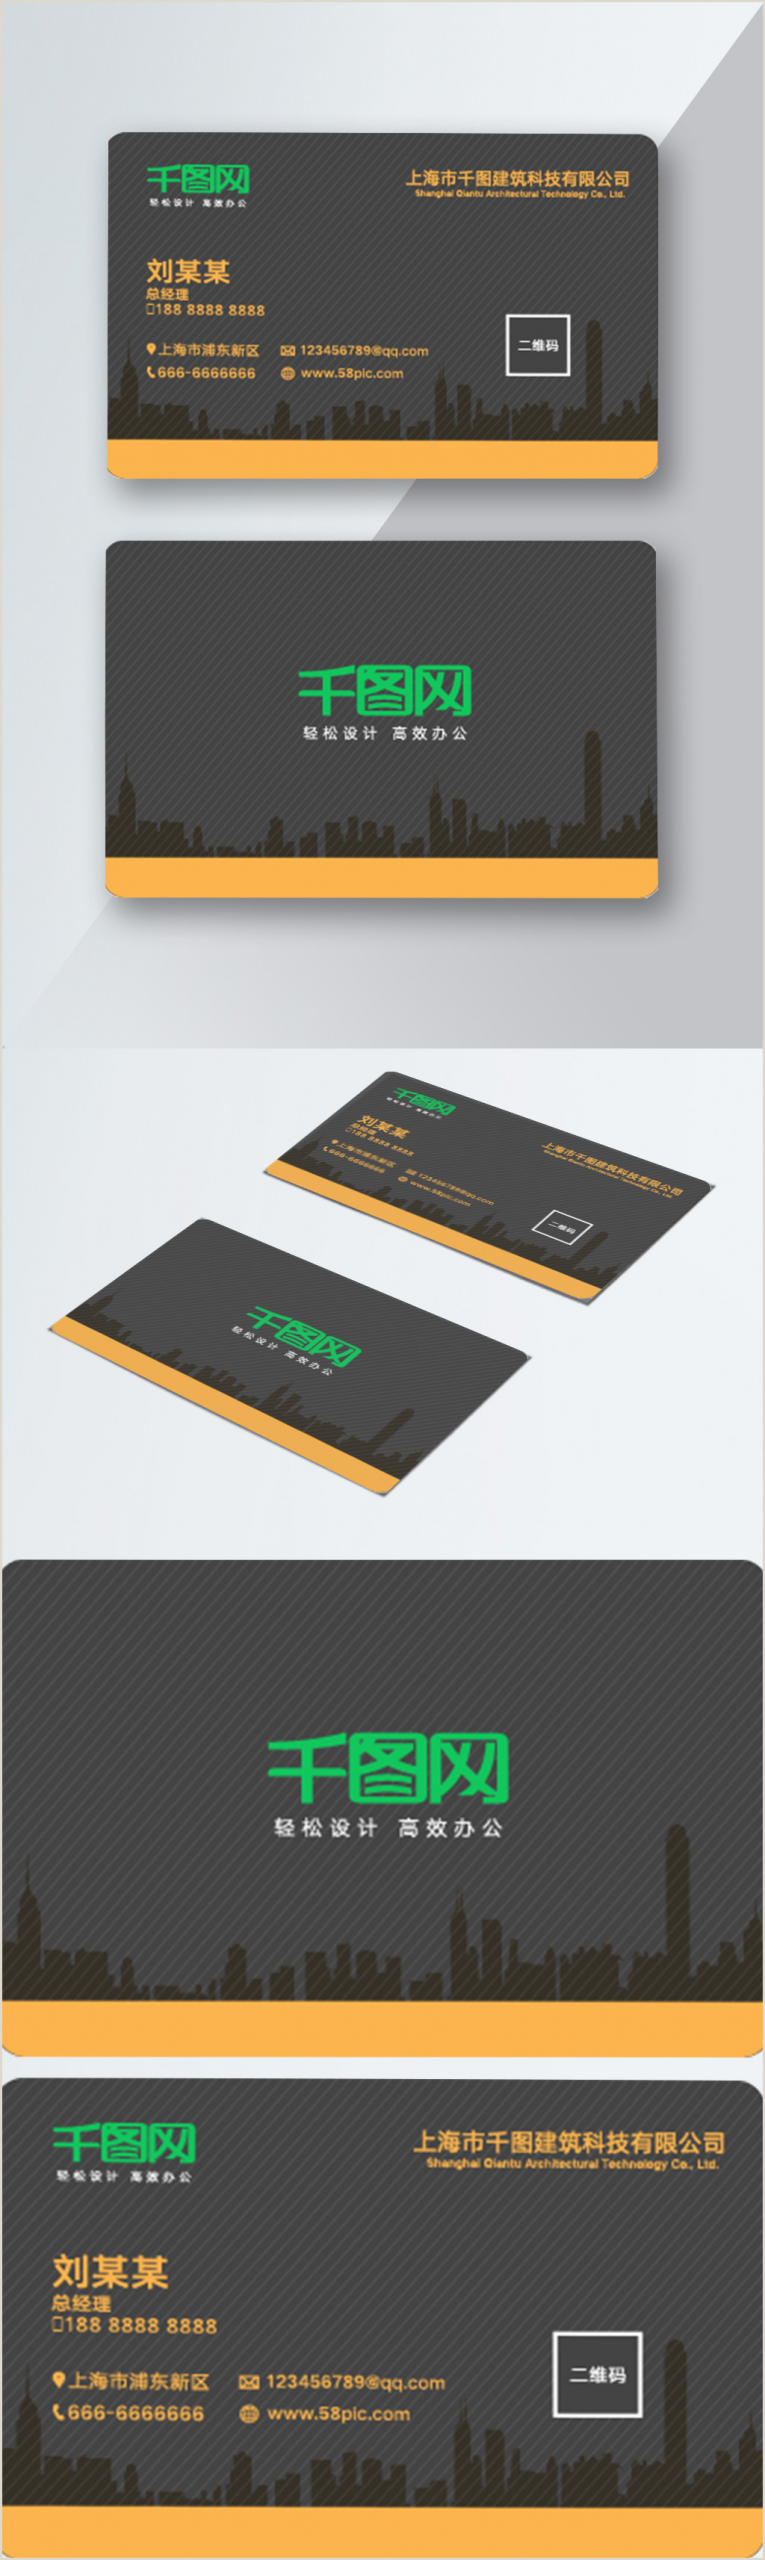 Business Card Back Design Black And White Business Senior Business Card With Qr Code